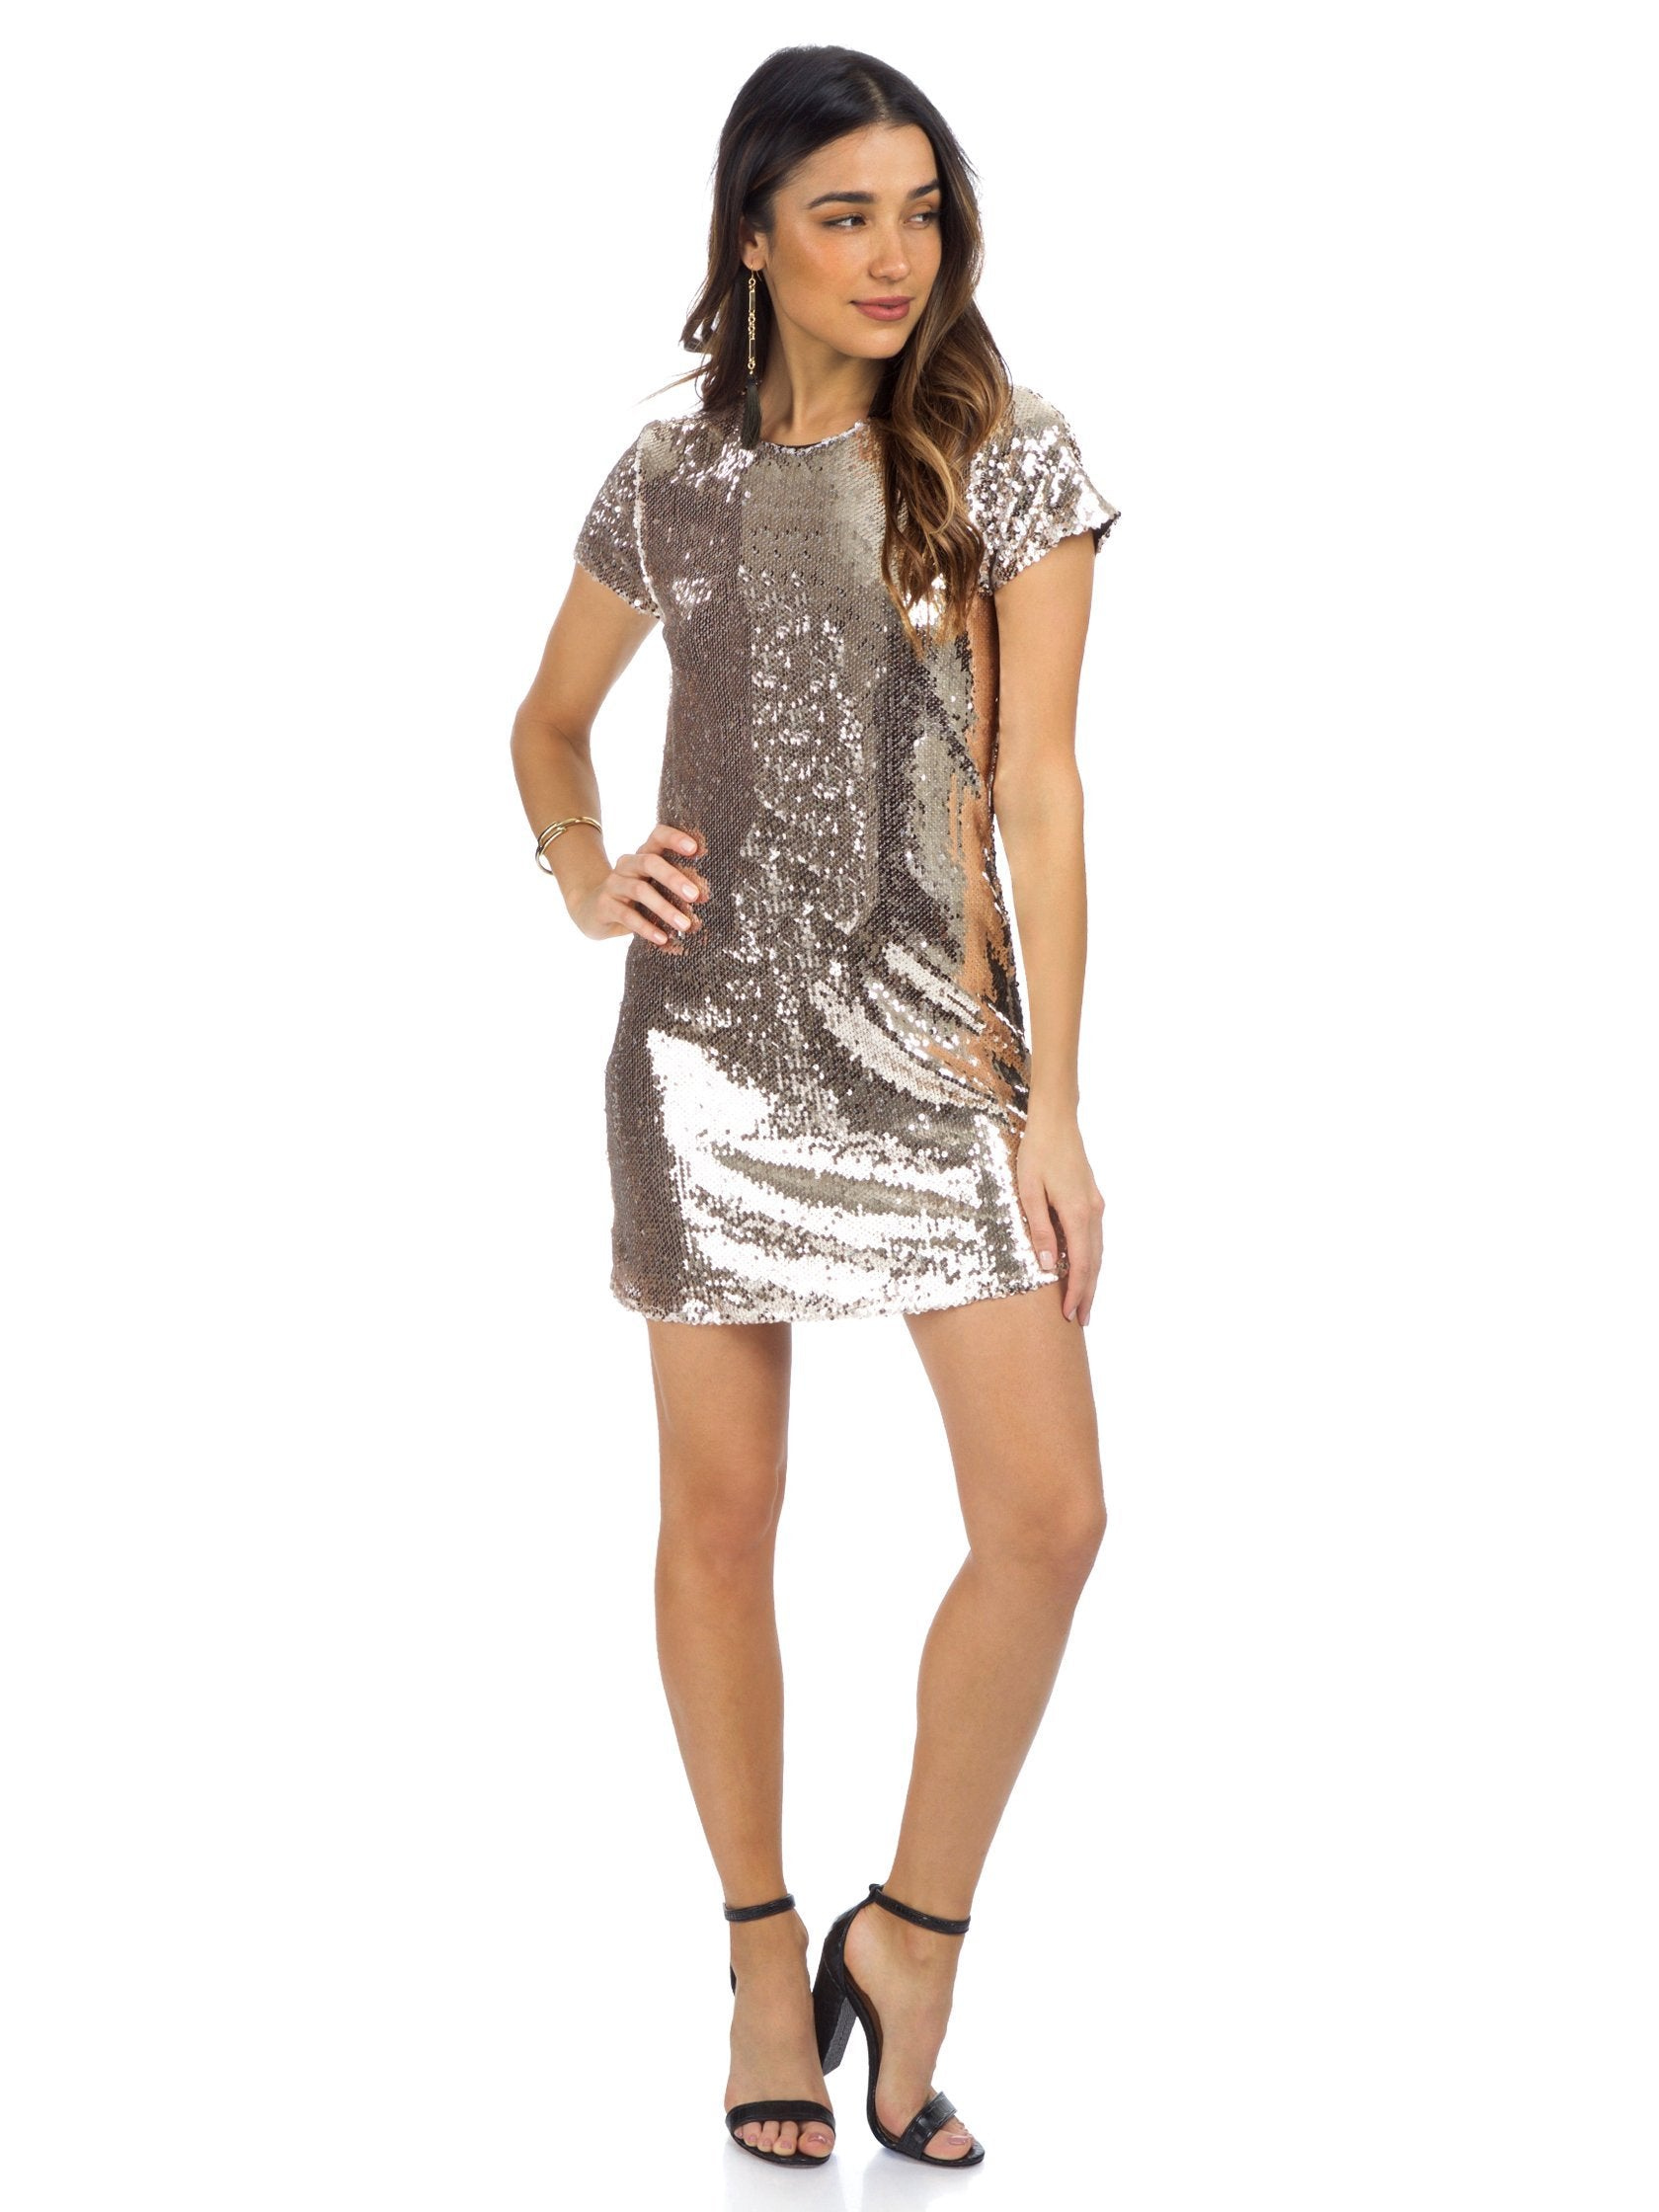 Woman wearing a dress rental from Line & Dot called Soleil Sequin Dress